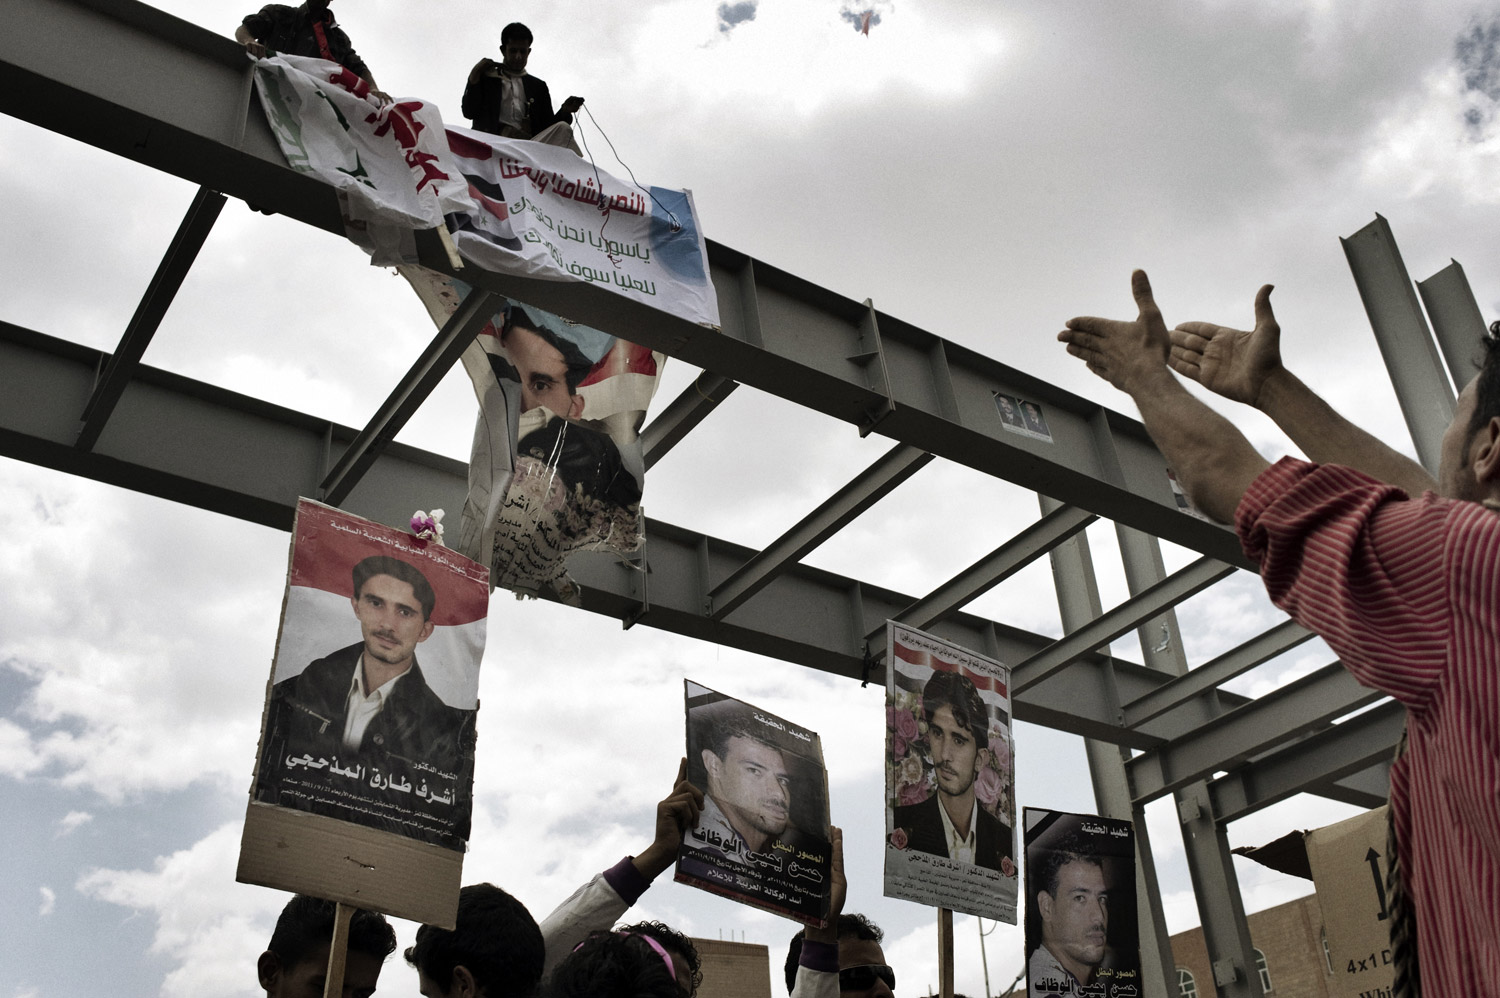 A Yemeni protestor waves posters of demonstrators recently killed during clashes in Syria on September 30, 2011.